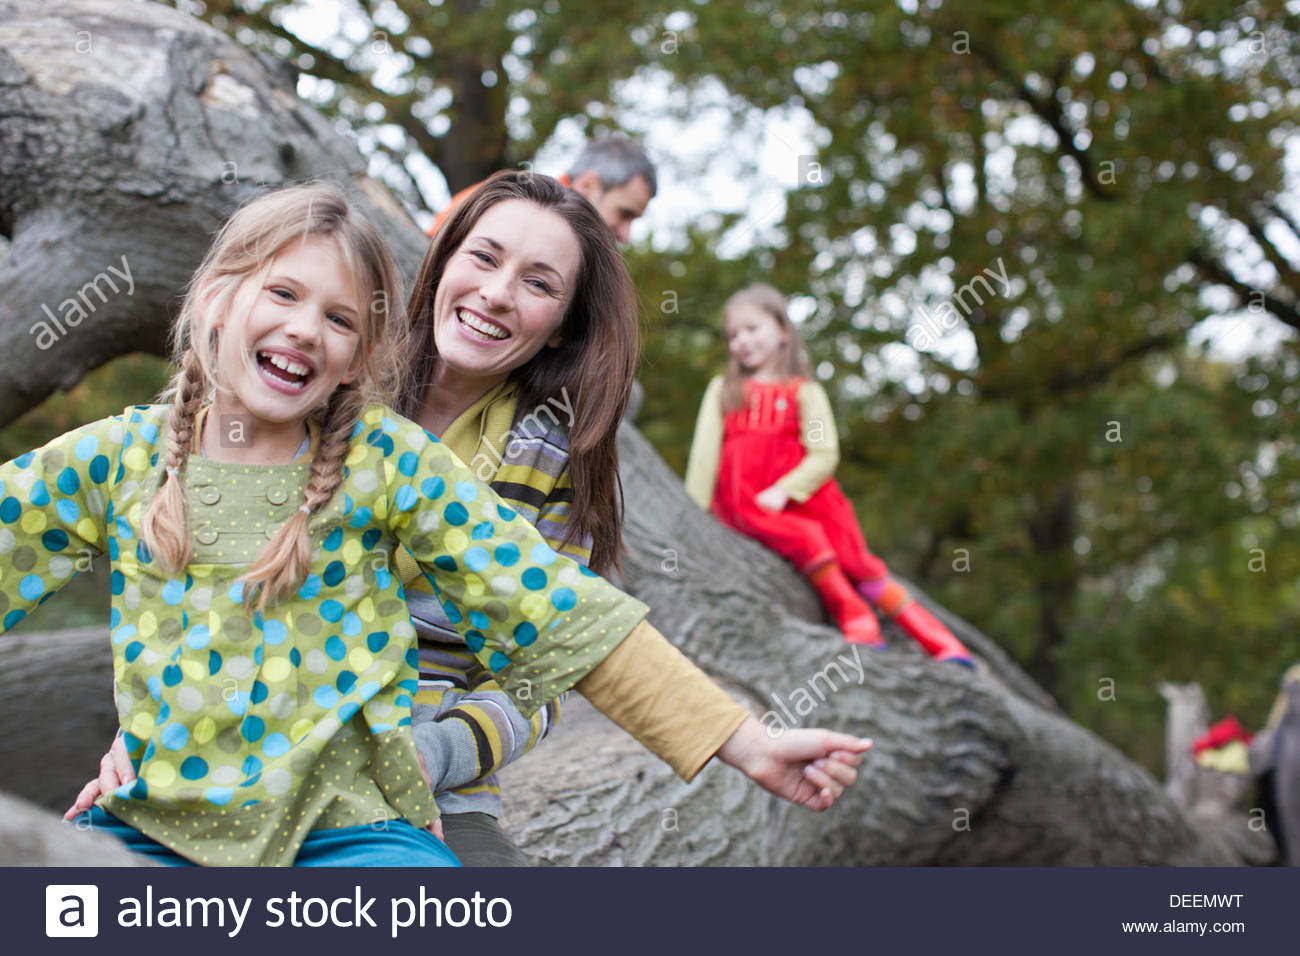 Family climbing on tree branch - Stock Image